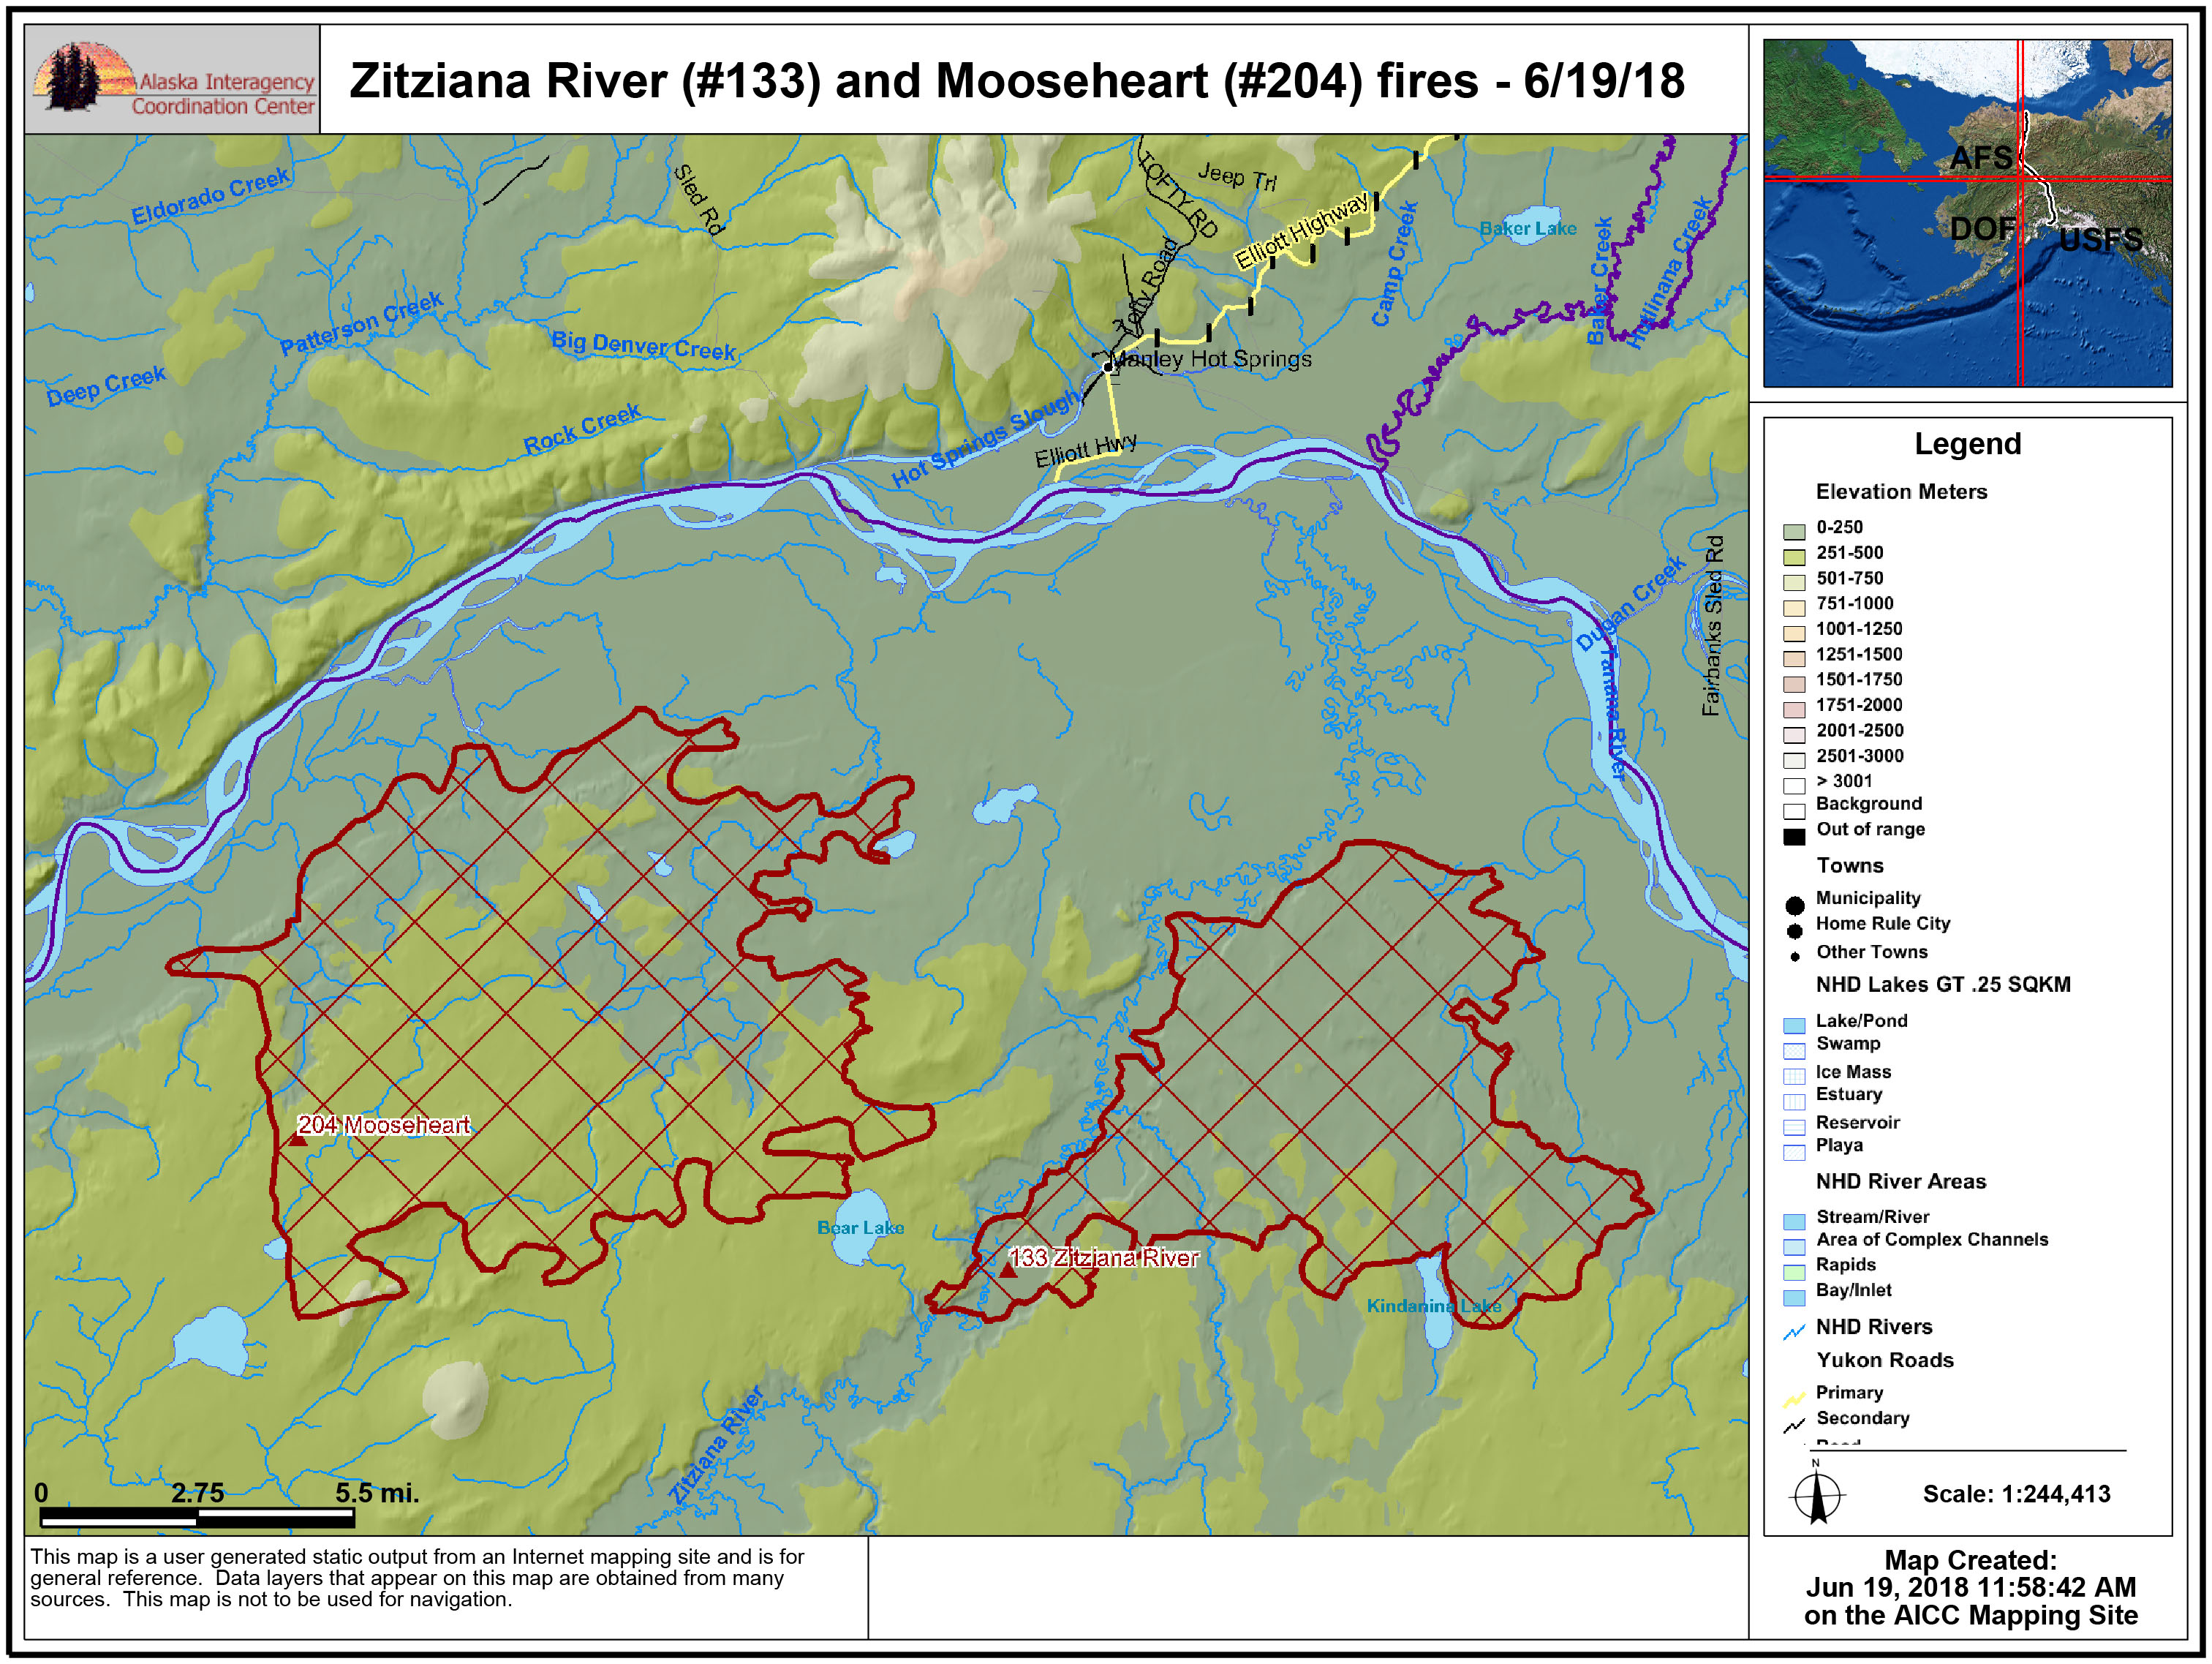 Big Bear Lake Fire Map.No New Growth Reported On Zitziana And Mooseheart Fires Ak Fire Info